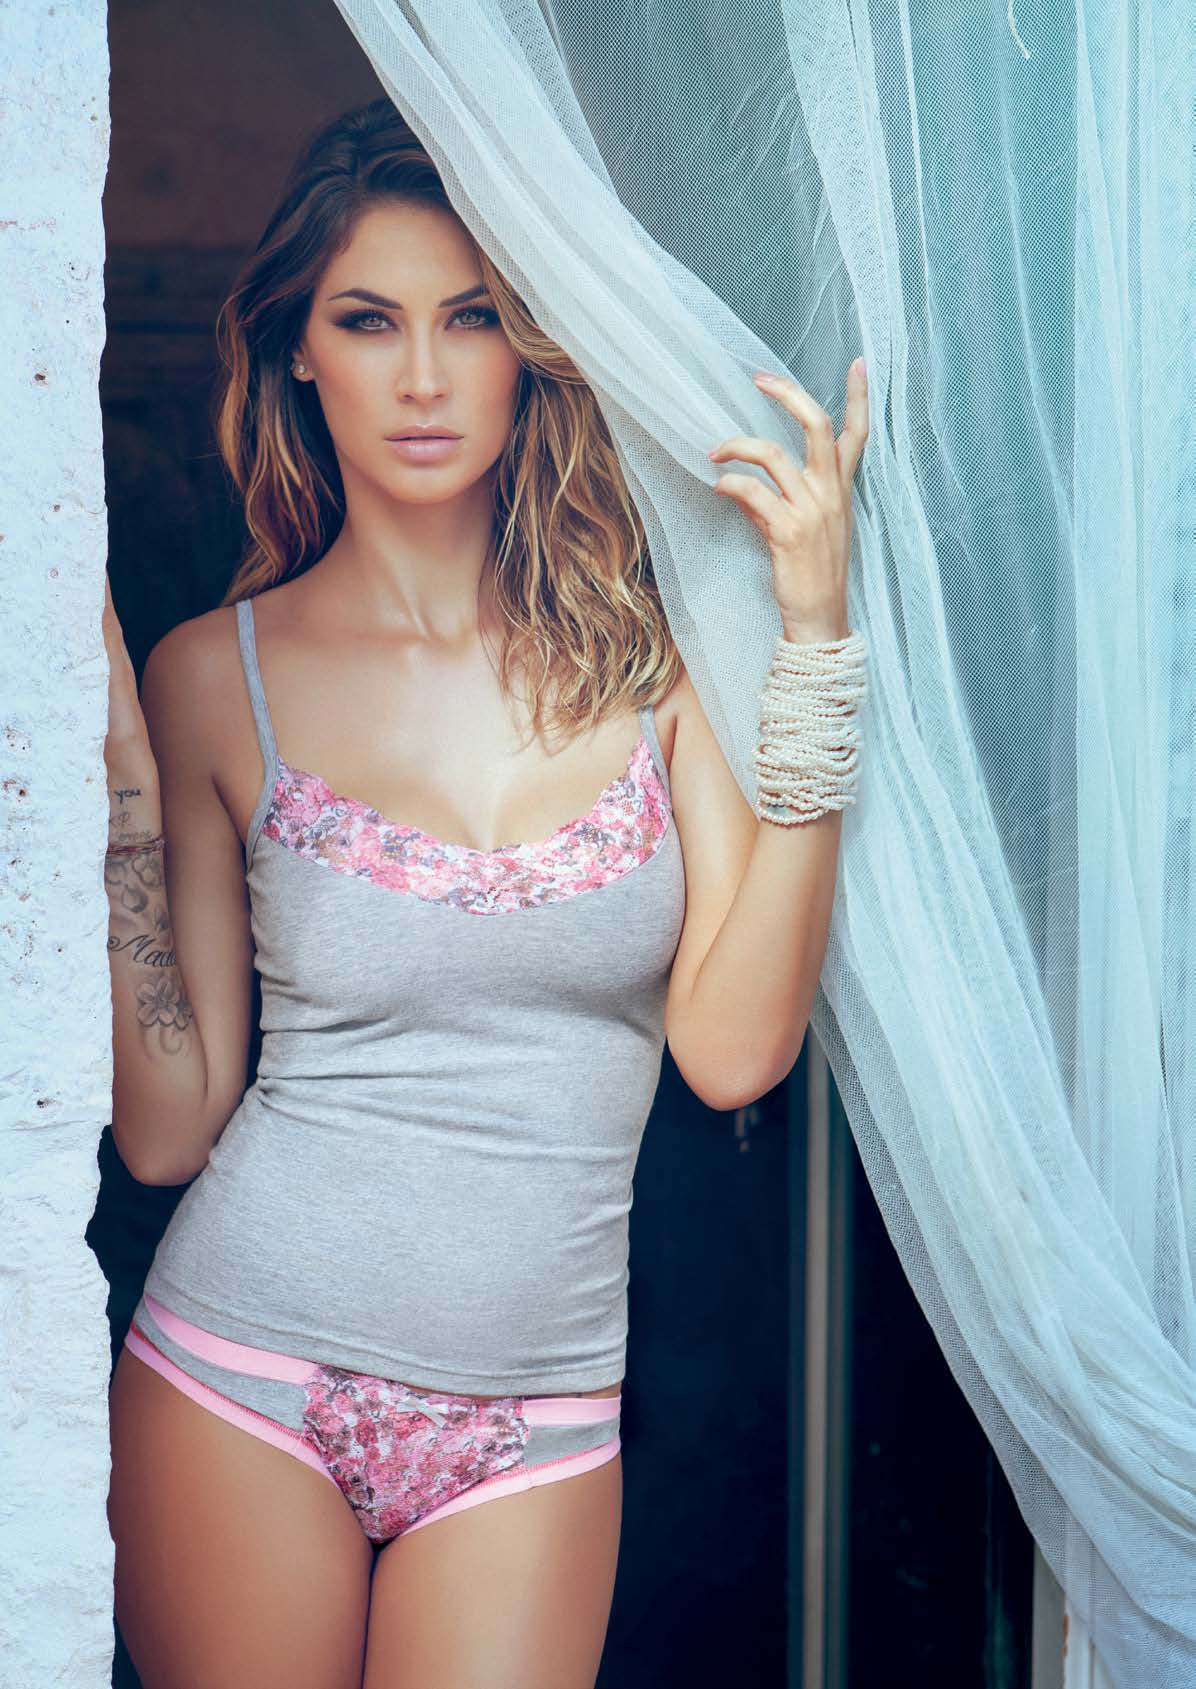 melissa satta - photo #32